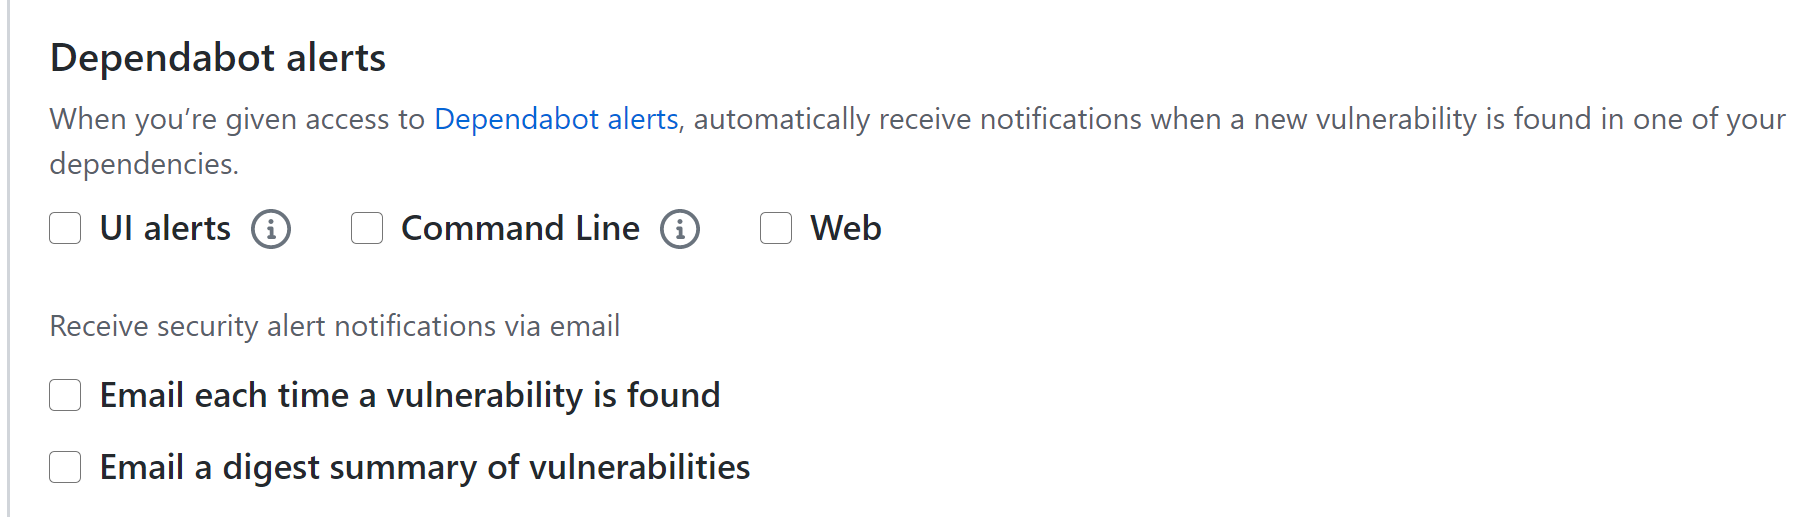 Dependabot alerts options